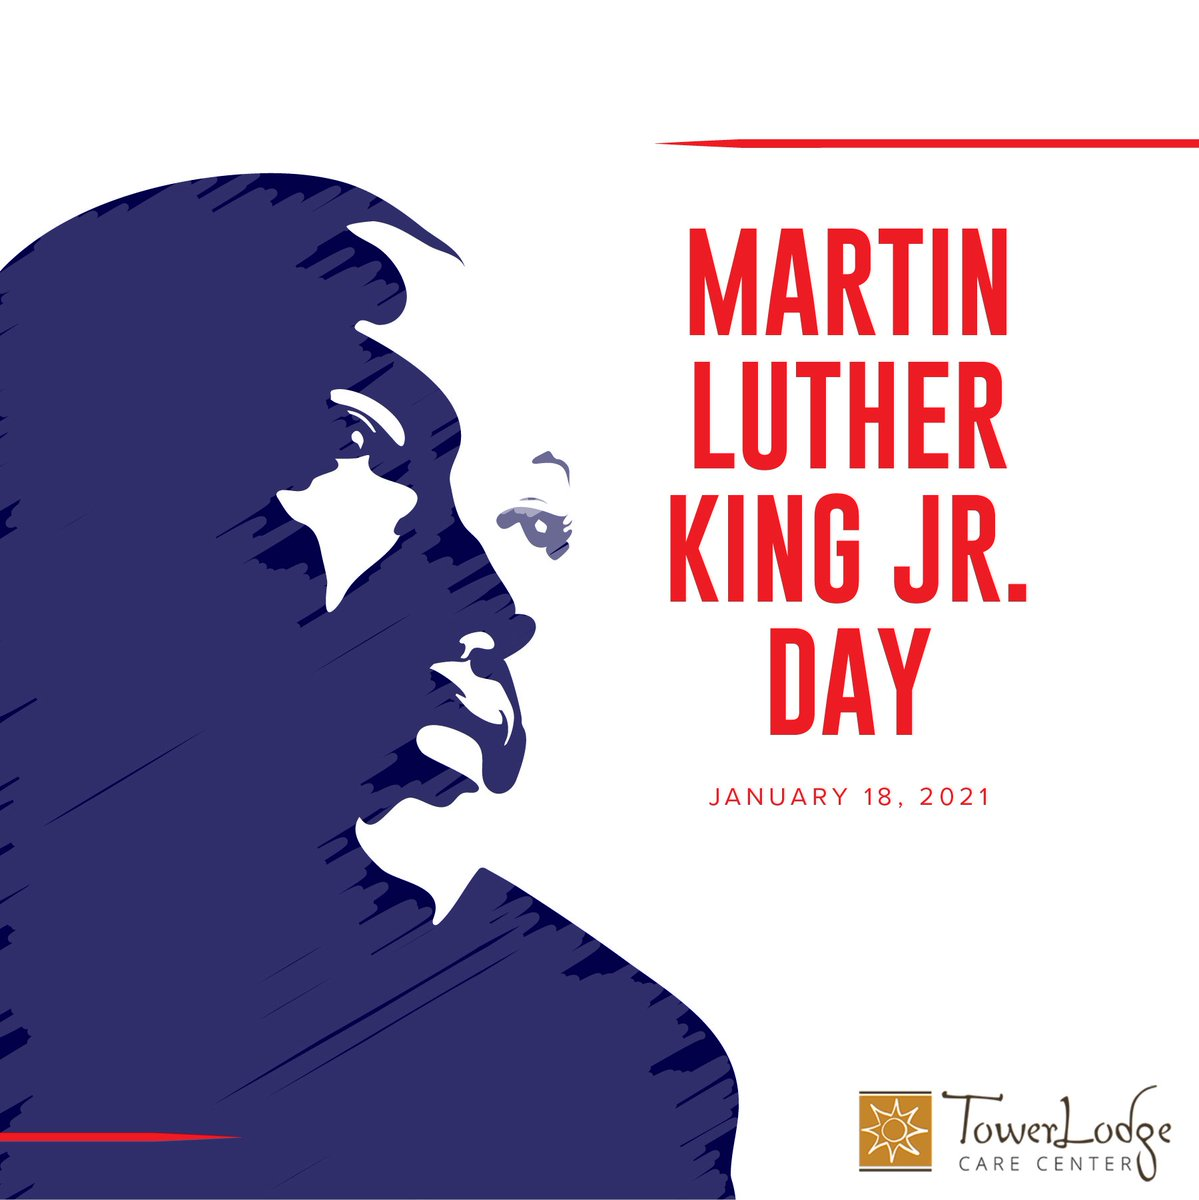 Each year on the third Monday of January we observe Martin Luther King, Jr. Day and reflect on his work for racial equality. Today, we remember and celebrate his life and achievements. #MartinLutherKingJrDay #MLKDay #MLK